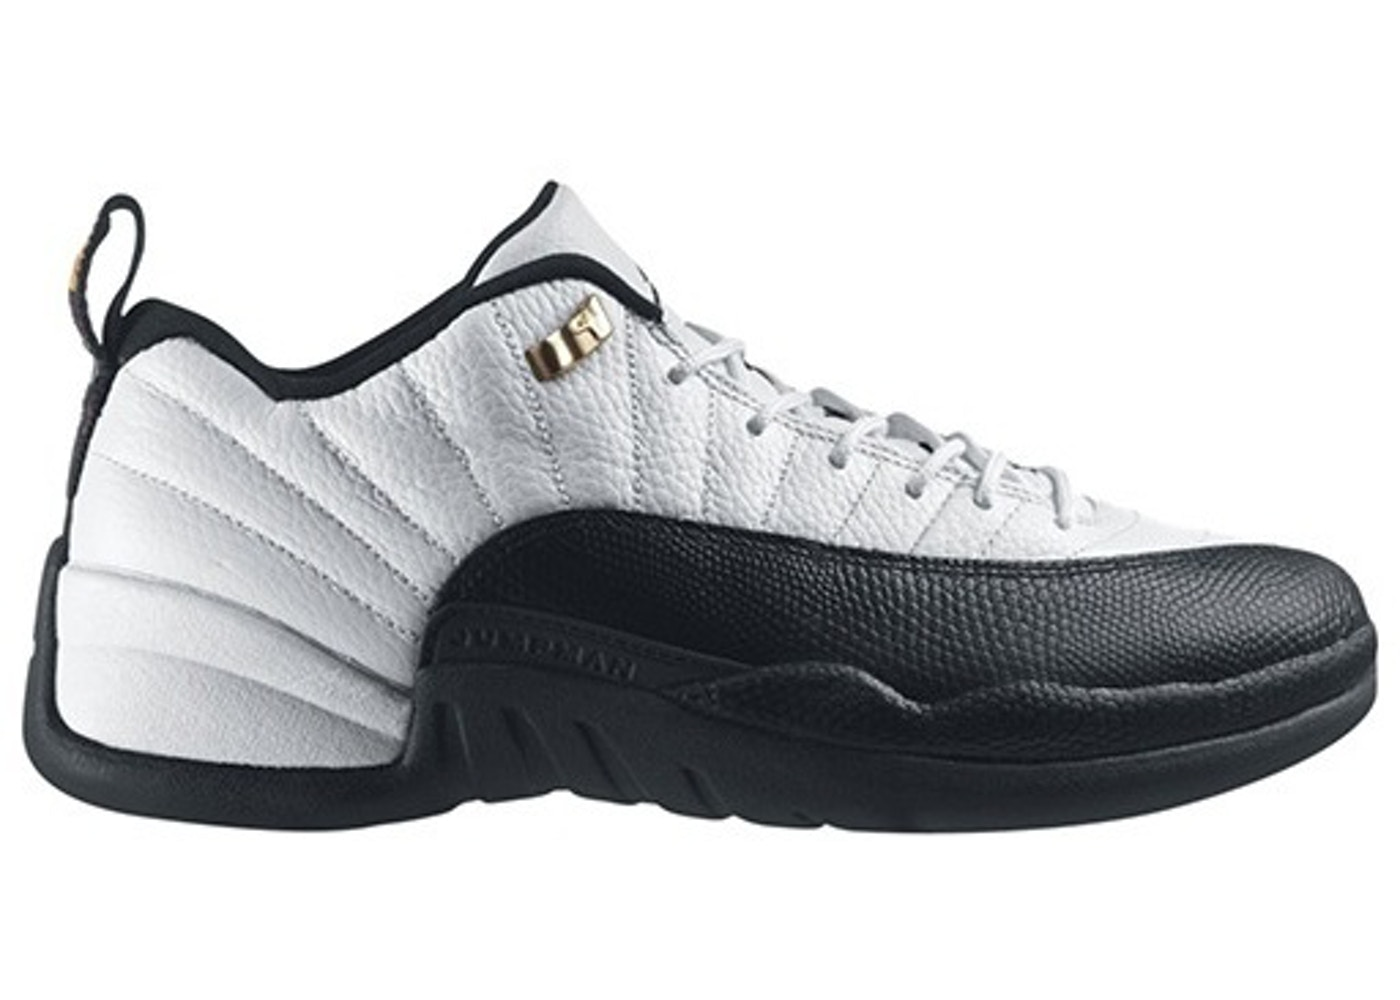 517205d10ca Sell. or Ask. Size: 10. View All Bids. Jordan 12 Retro Low Taxi ...